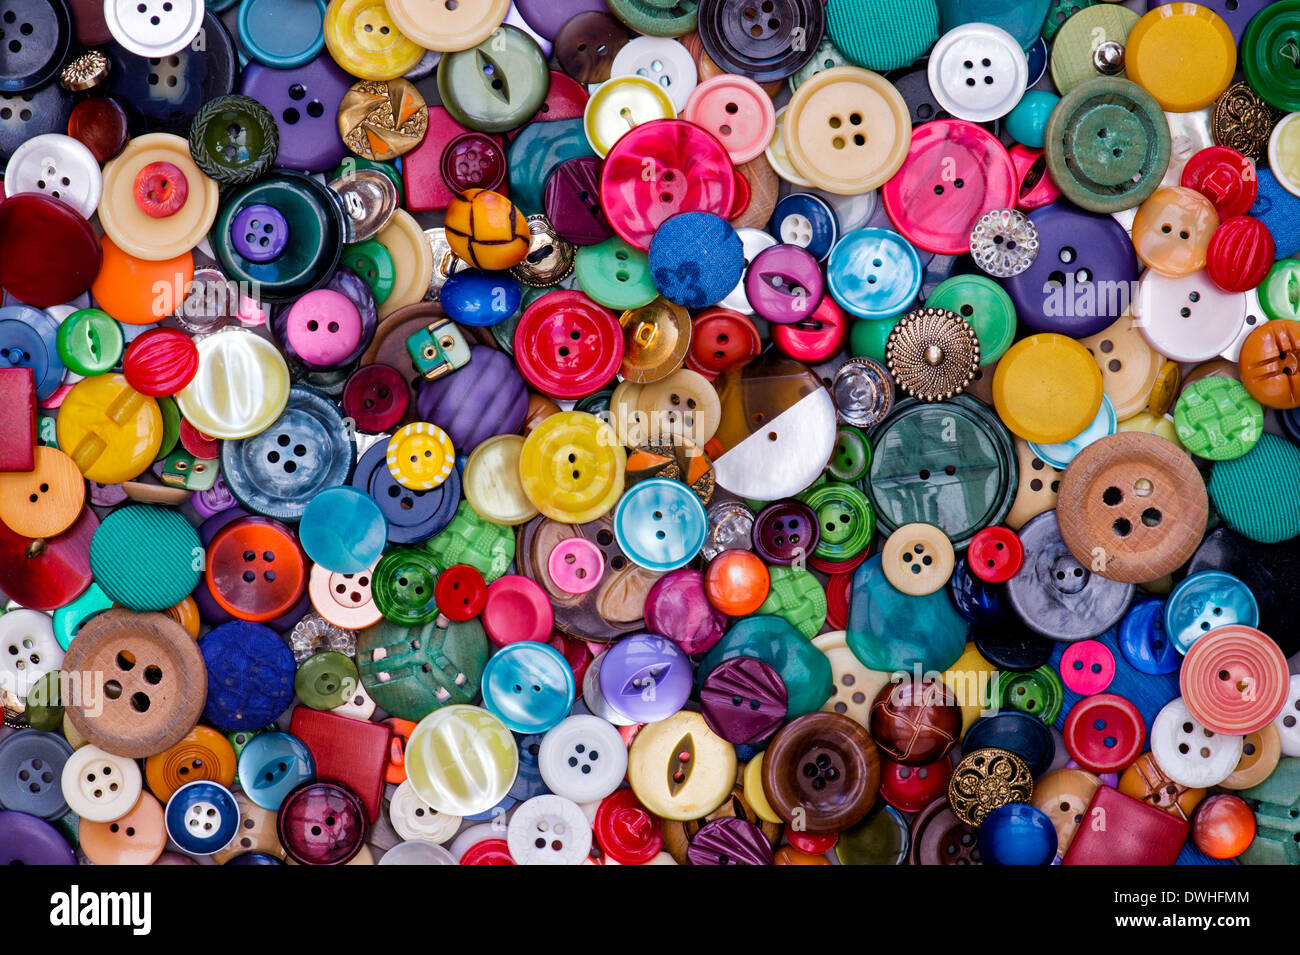 Colourful Buttons Pattern - Stock Image